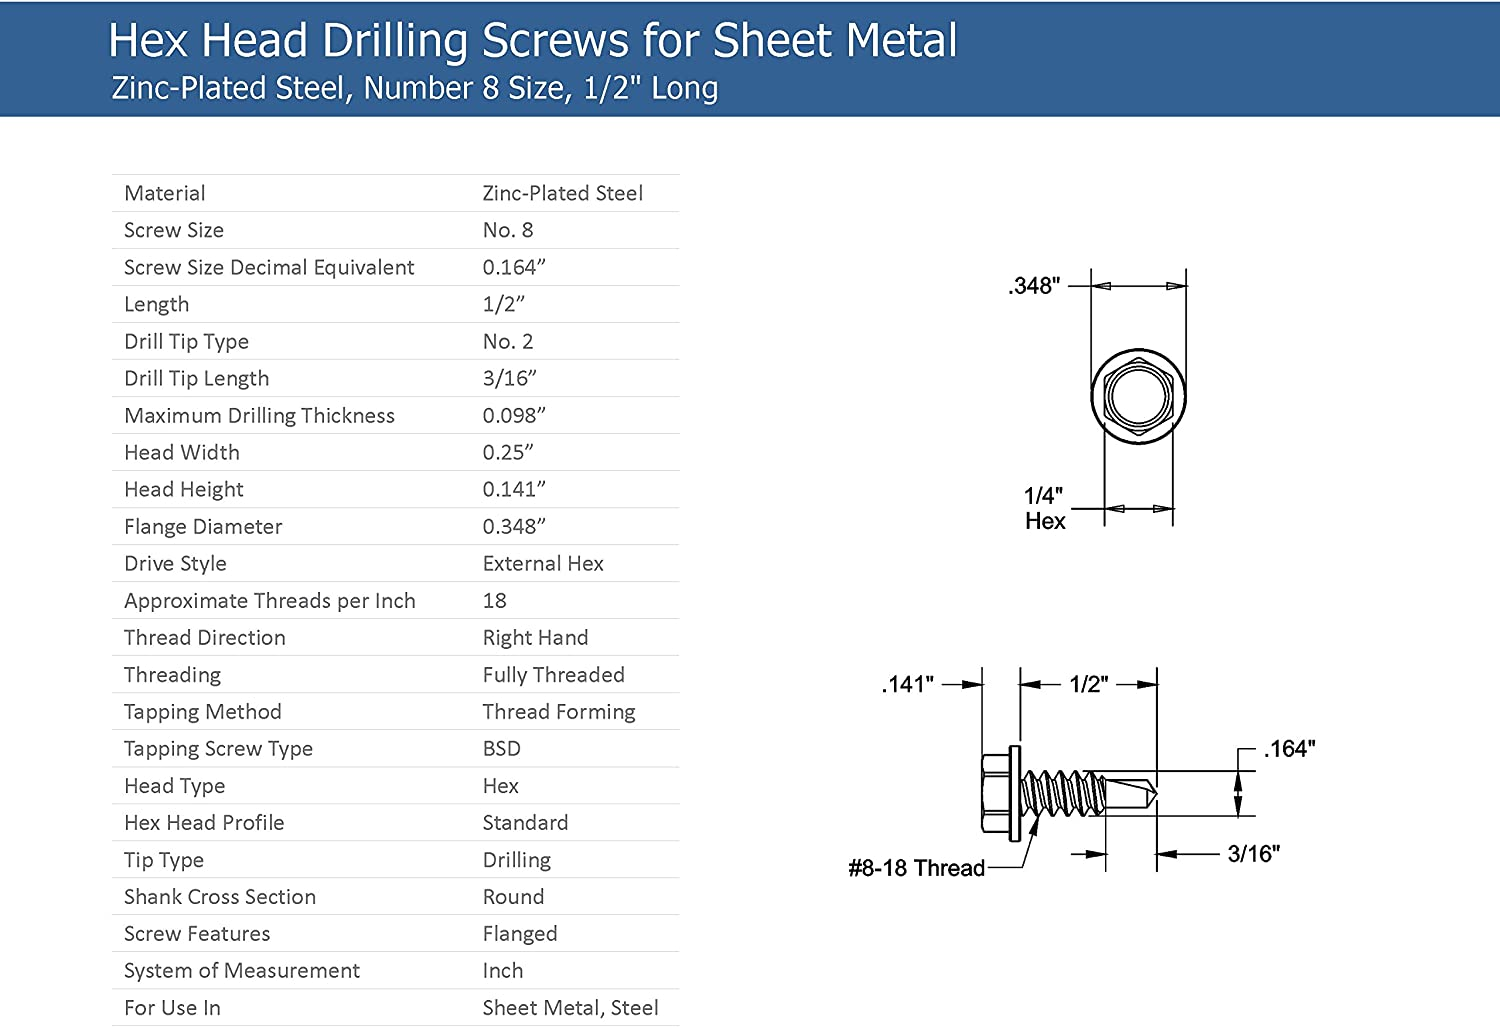 #8-18 Thread Size 1 Length Type AB Steel Sheet Metal Screw Pack of 100 Zinc Plated Hex Drive Hex Washer Head